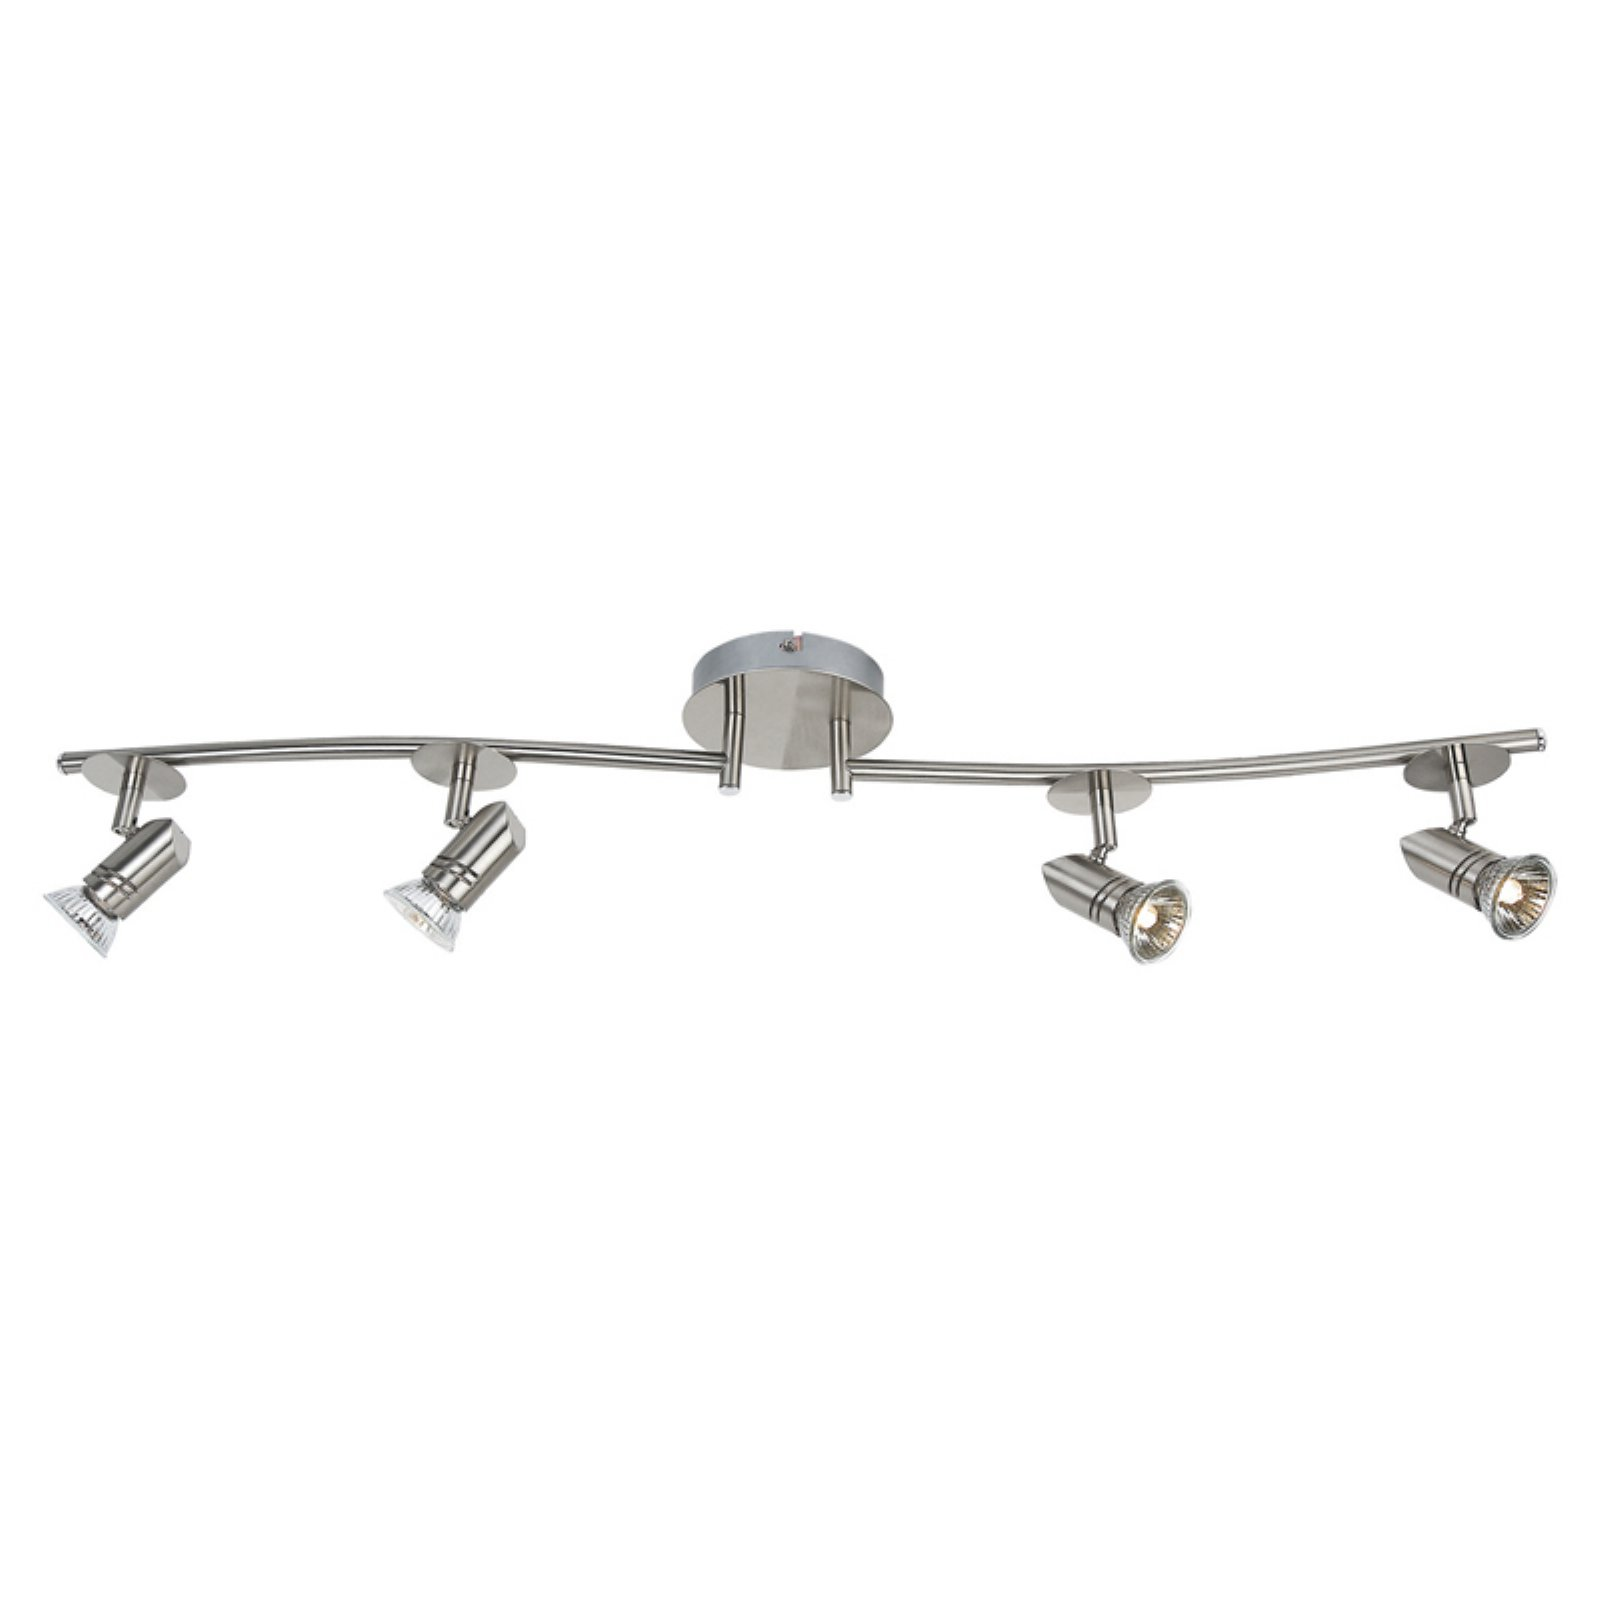 Catalina Lighting Four Light Fixed Track Light with Adjustable Arms by Illuminada